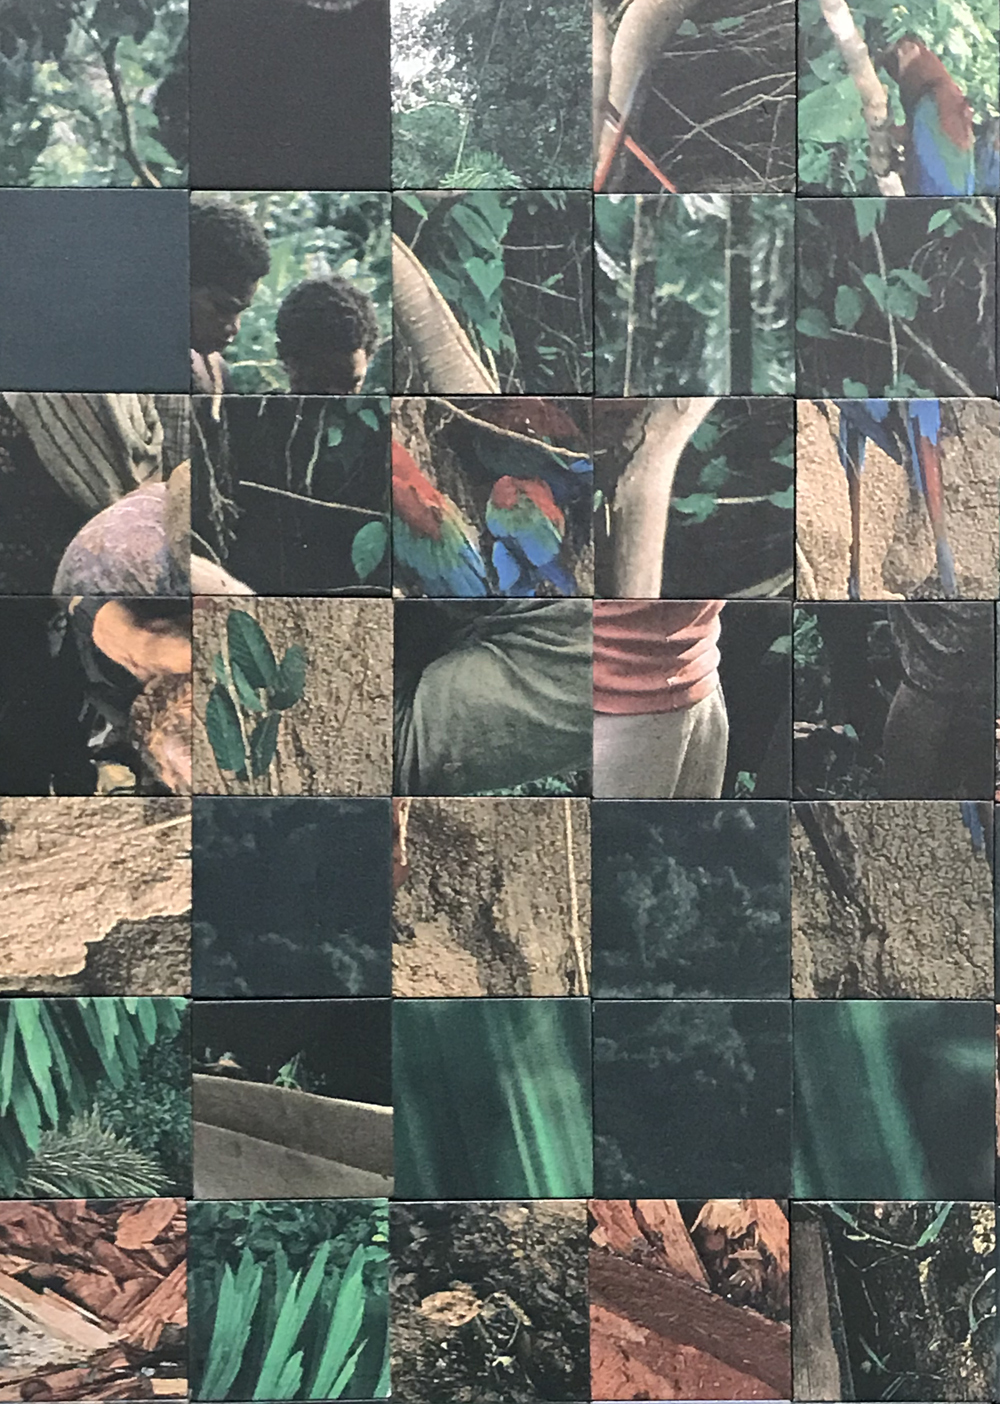 Donna ONG  Tropical Shades (I): Rainforest Narratives from the National Geographic (2010-2018) , detail 2018 UV print on rubber magnets H480 x W249 x D0.3 cm